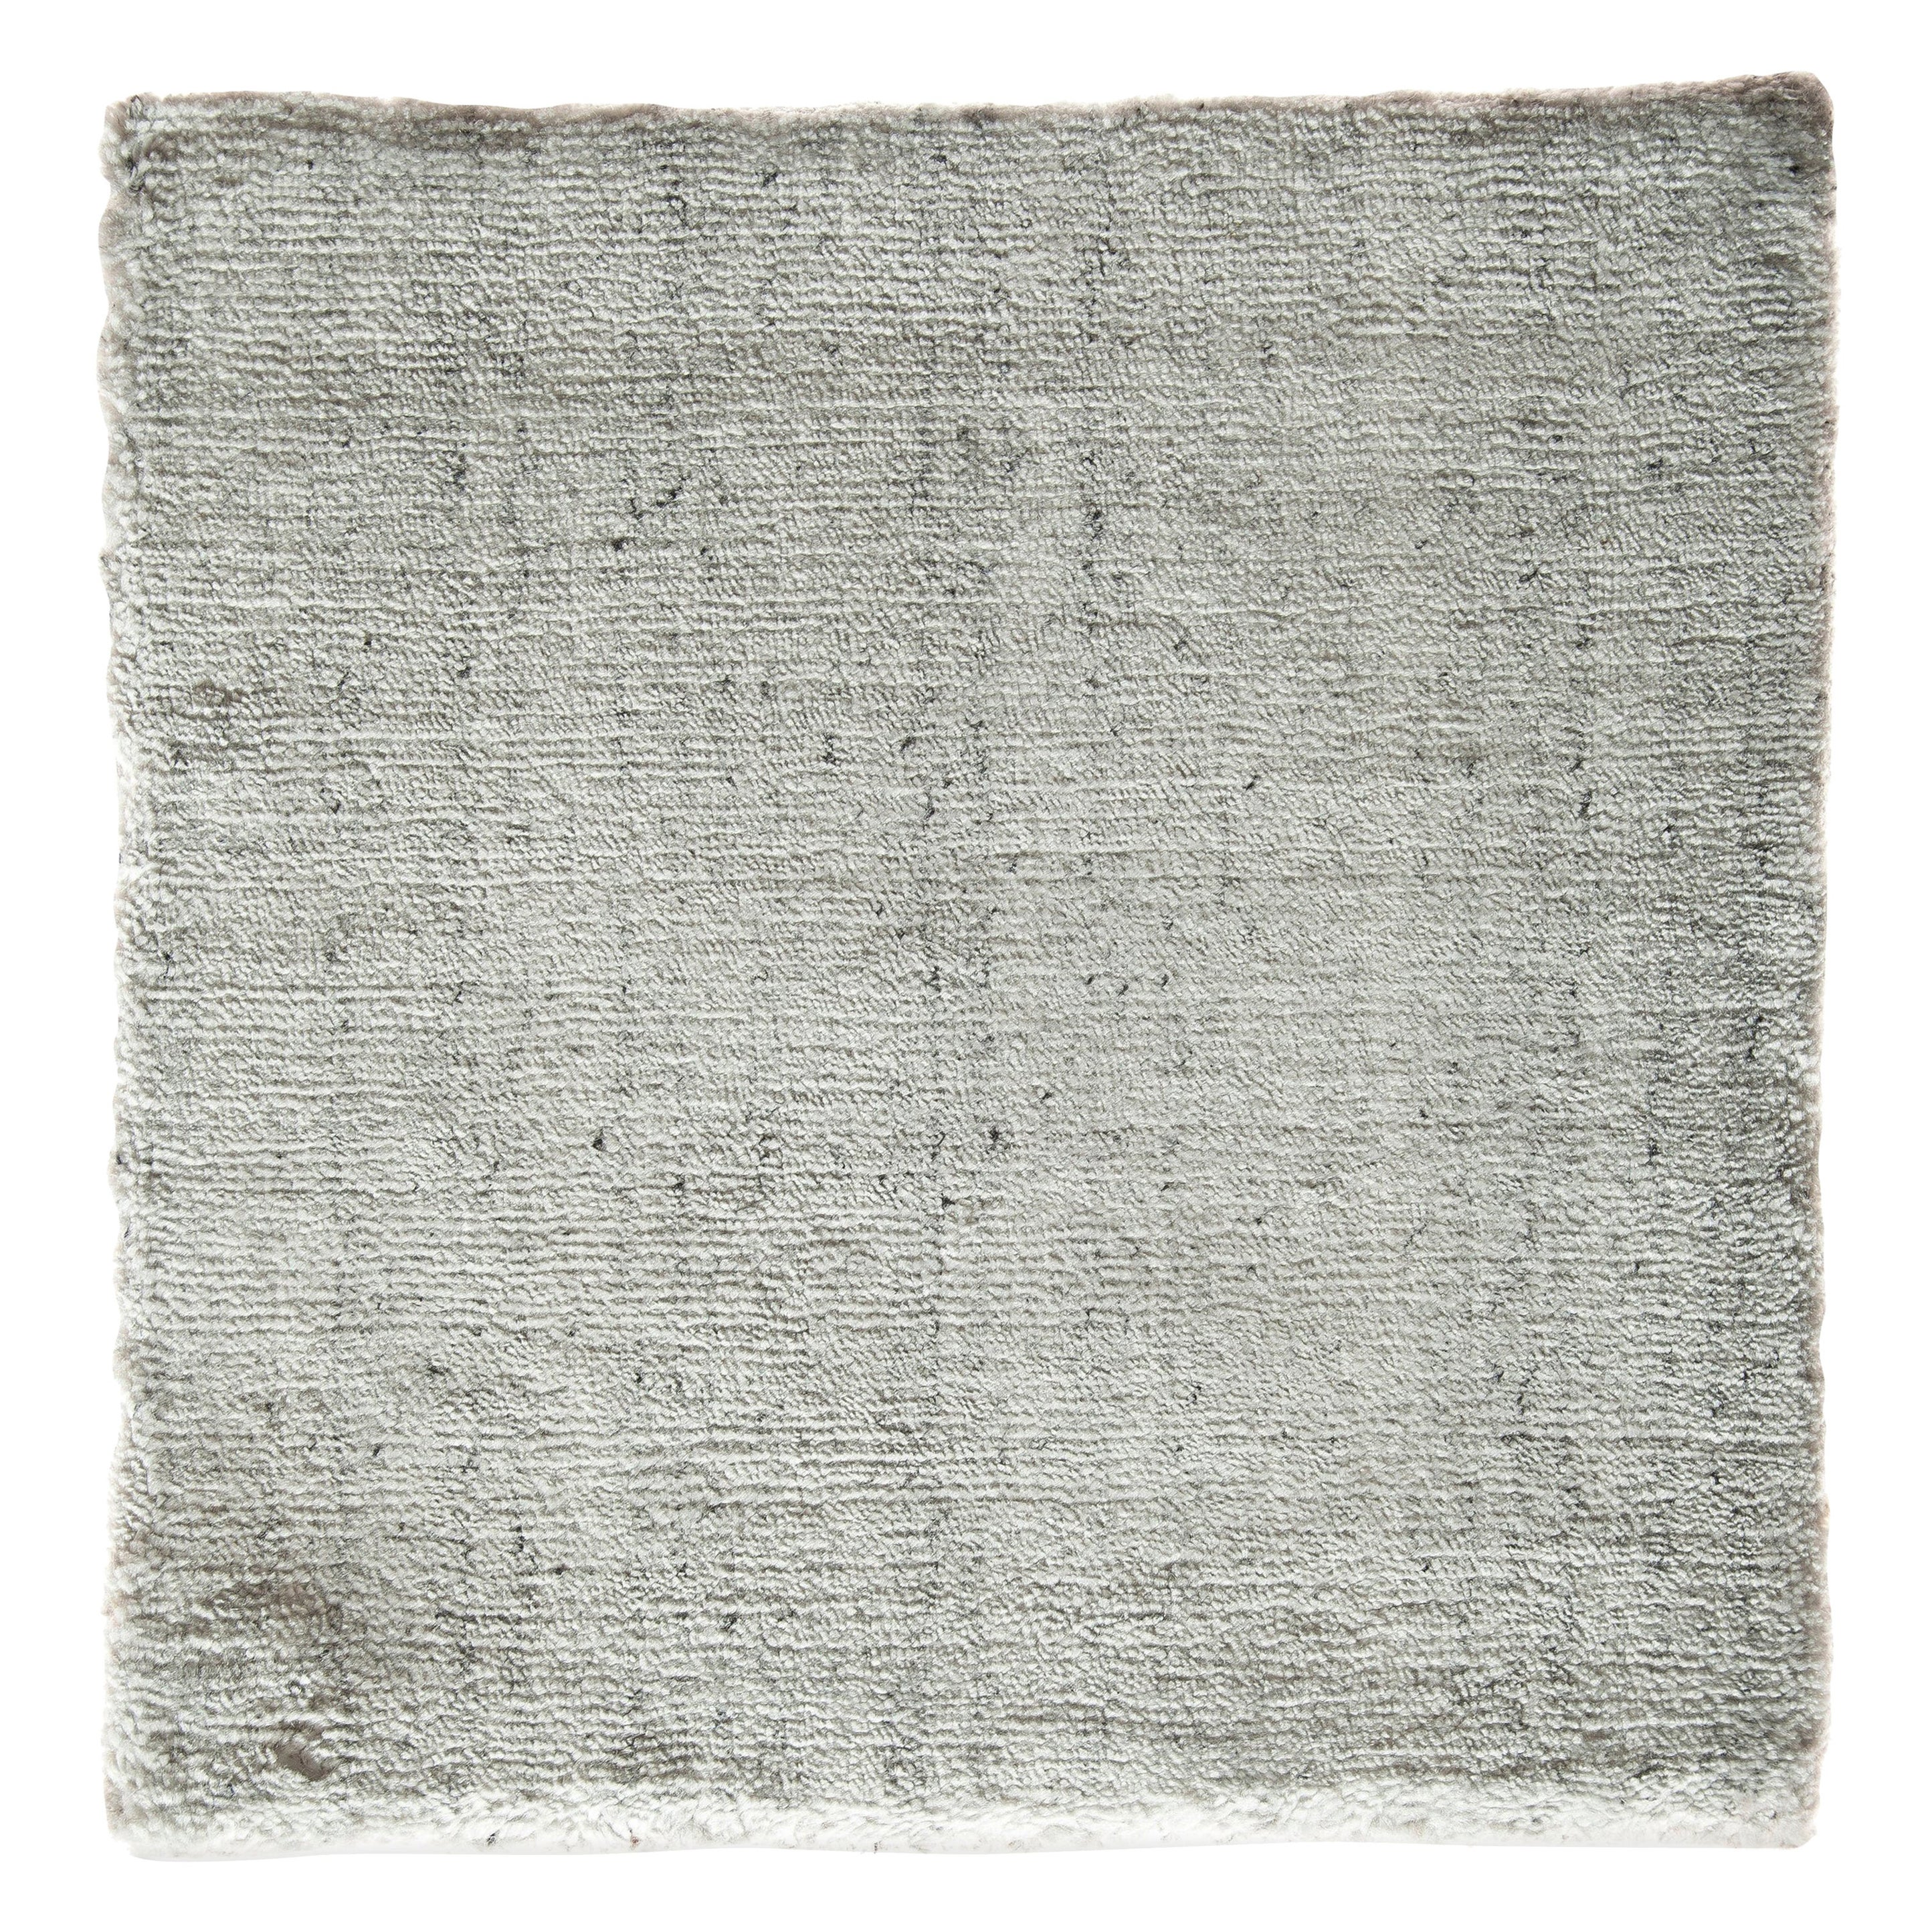 White, Silver, and Gray Striated Bamboo Silk Hand-Loomed Contemporary Rug